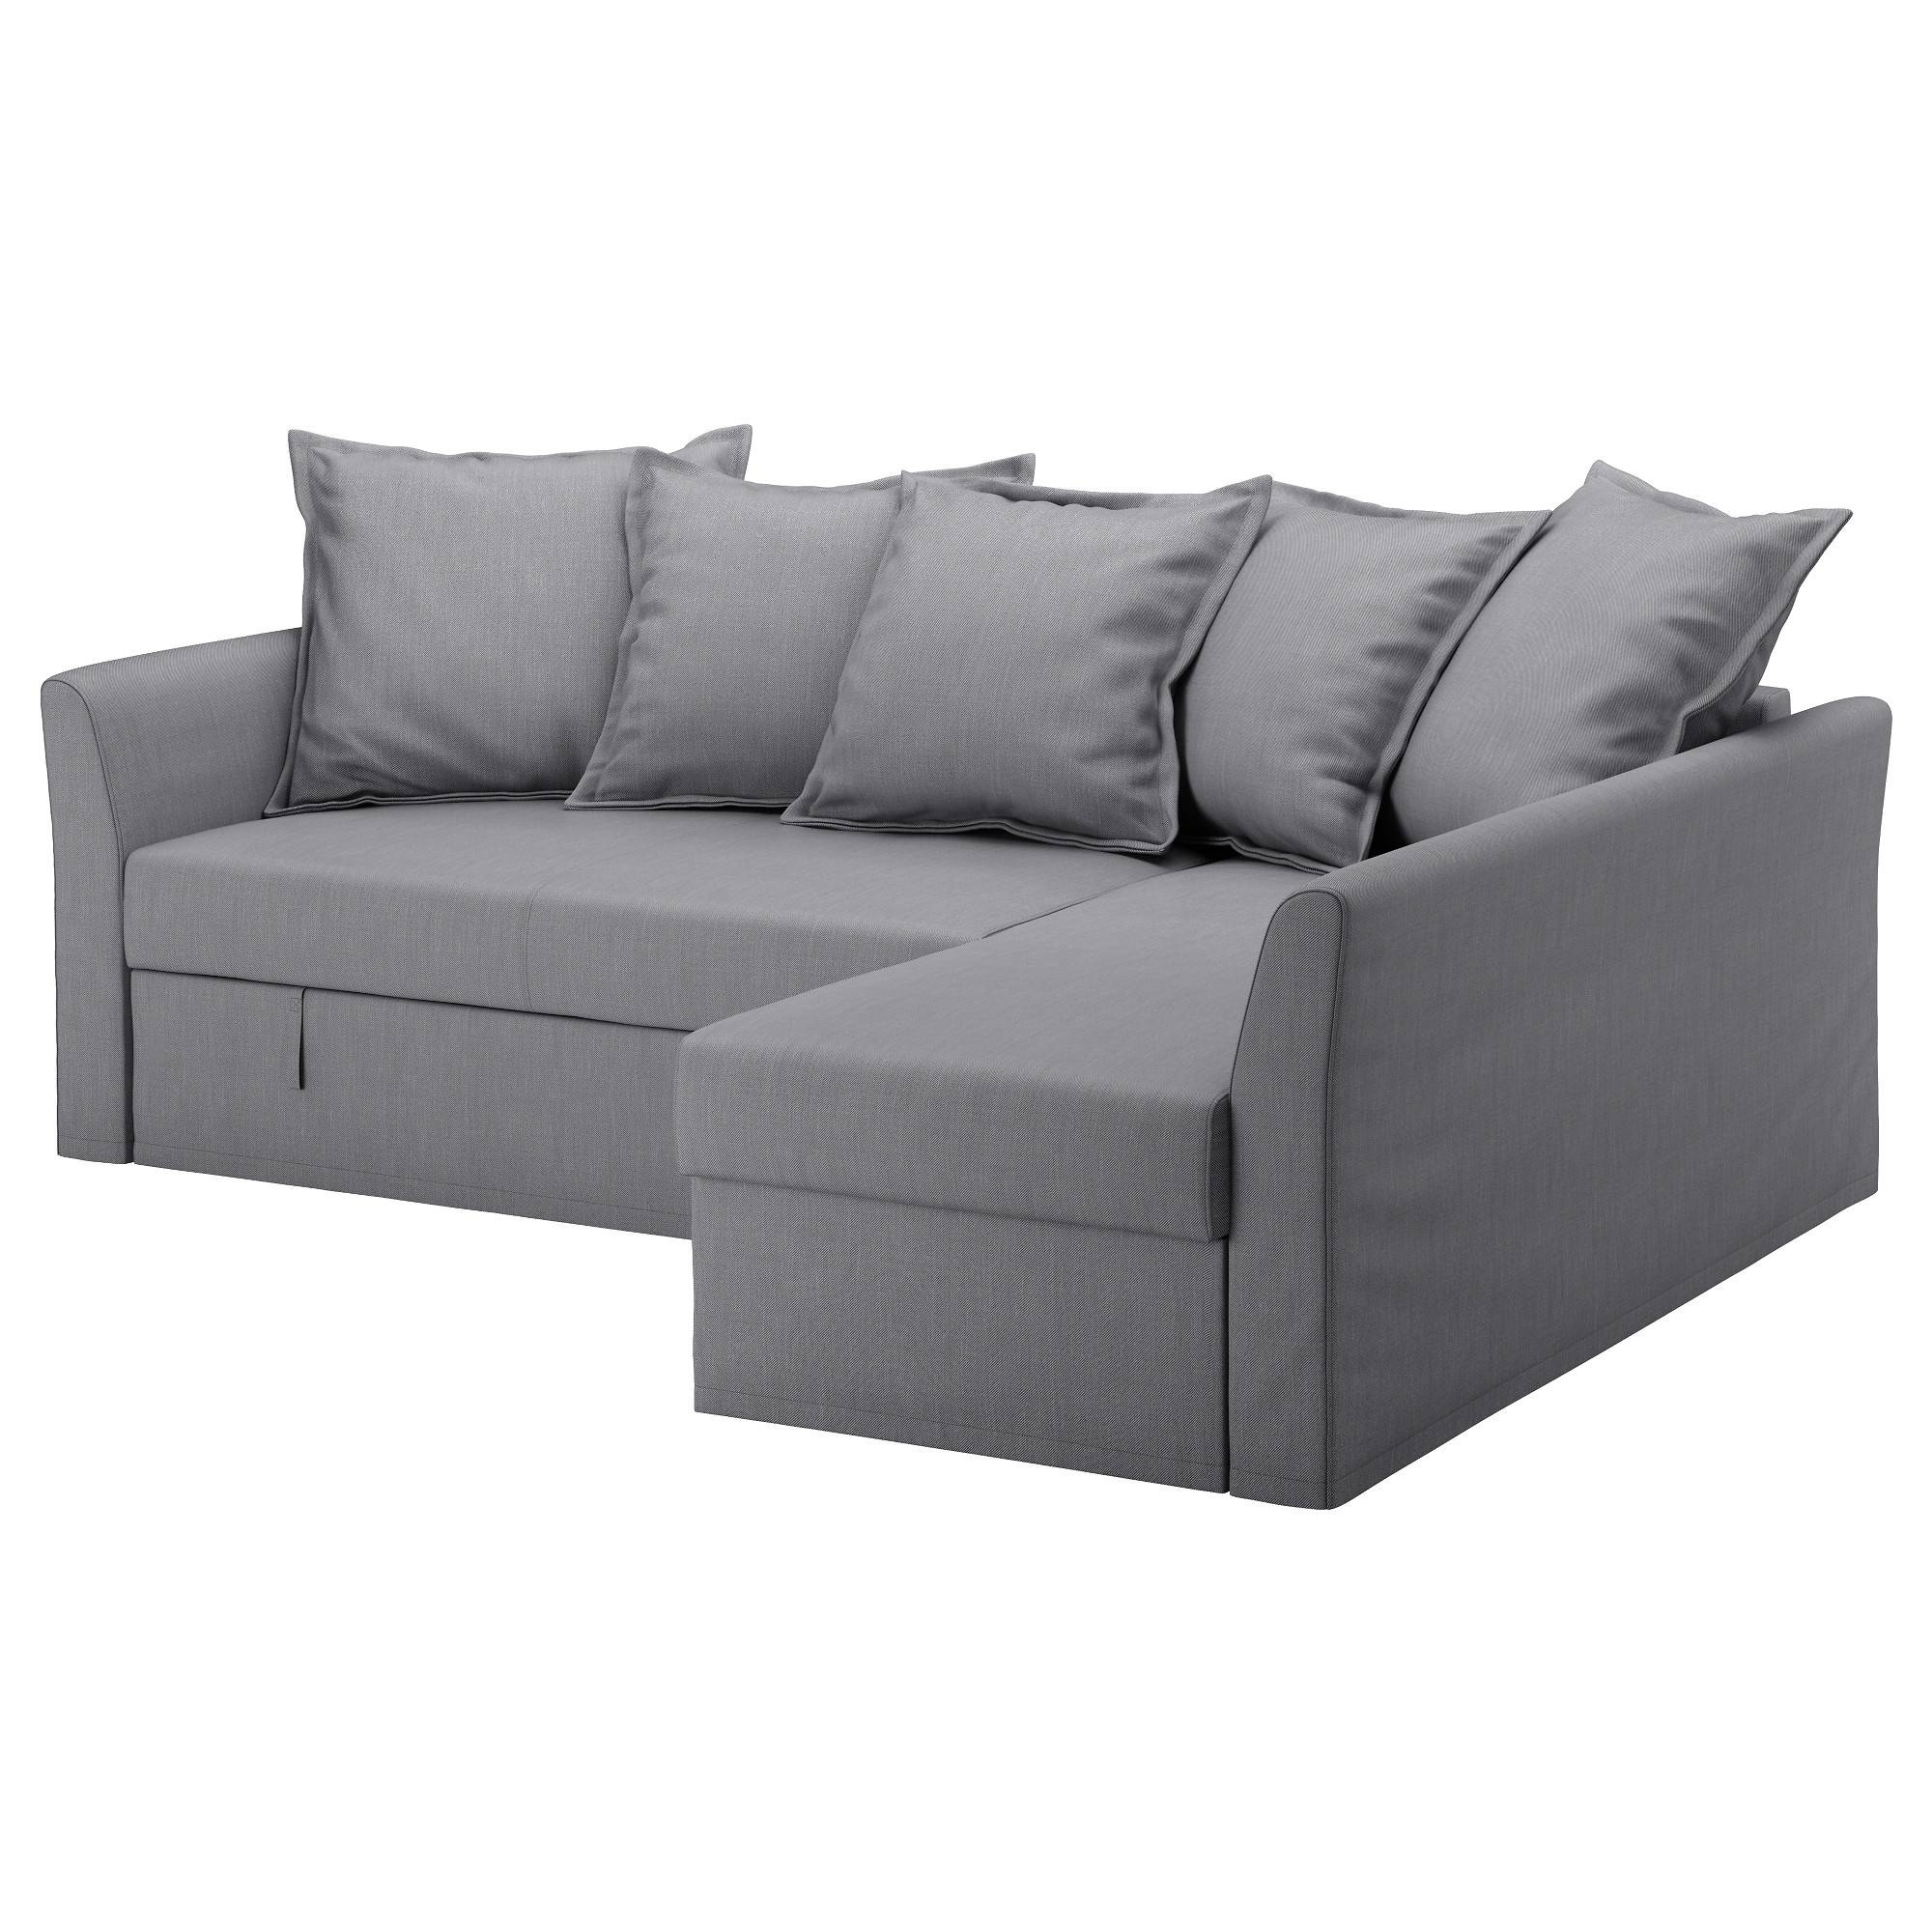 Holmsund Corner Sofa Bed Nordvalla Medium Grey – Ikea With Sofa Beds (View 7 of 15)